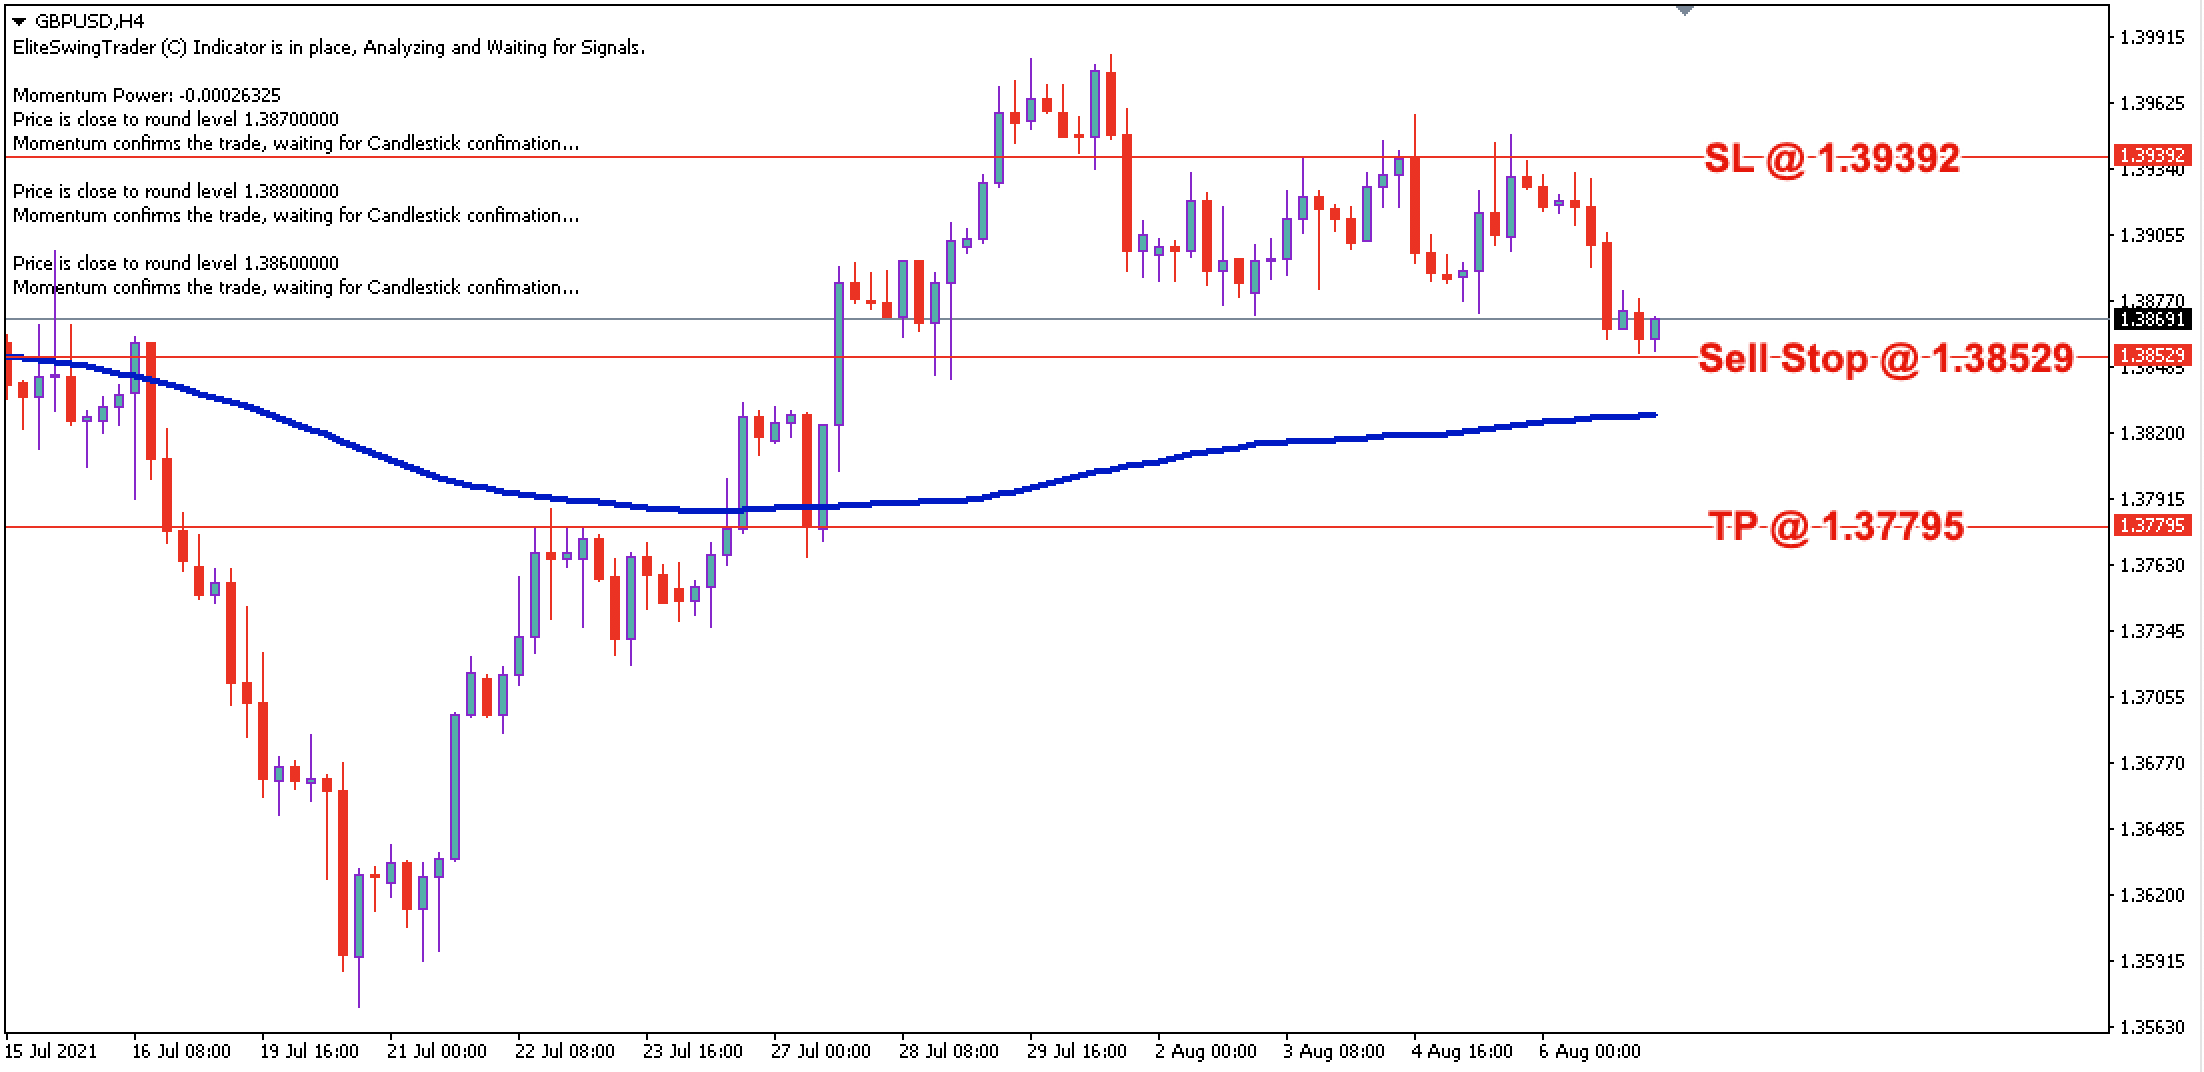 GBP/USD Daily Price Forecast – 9th August 2021